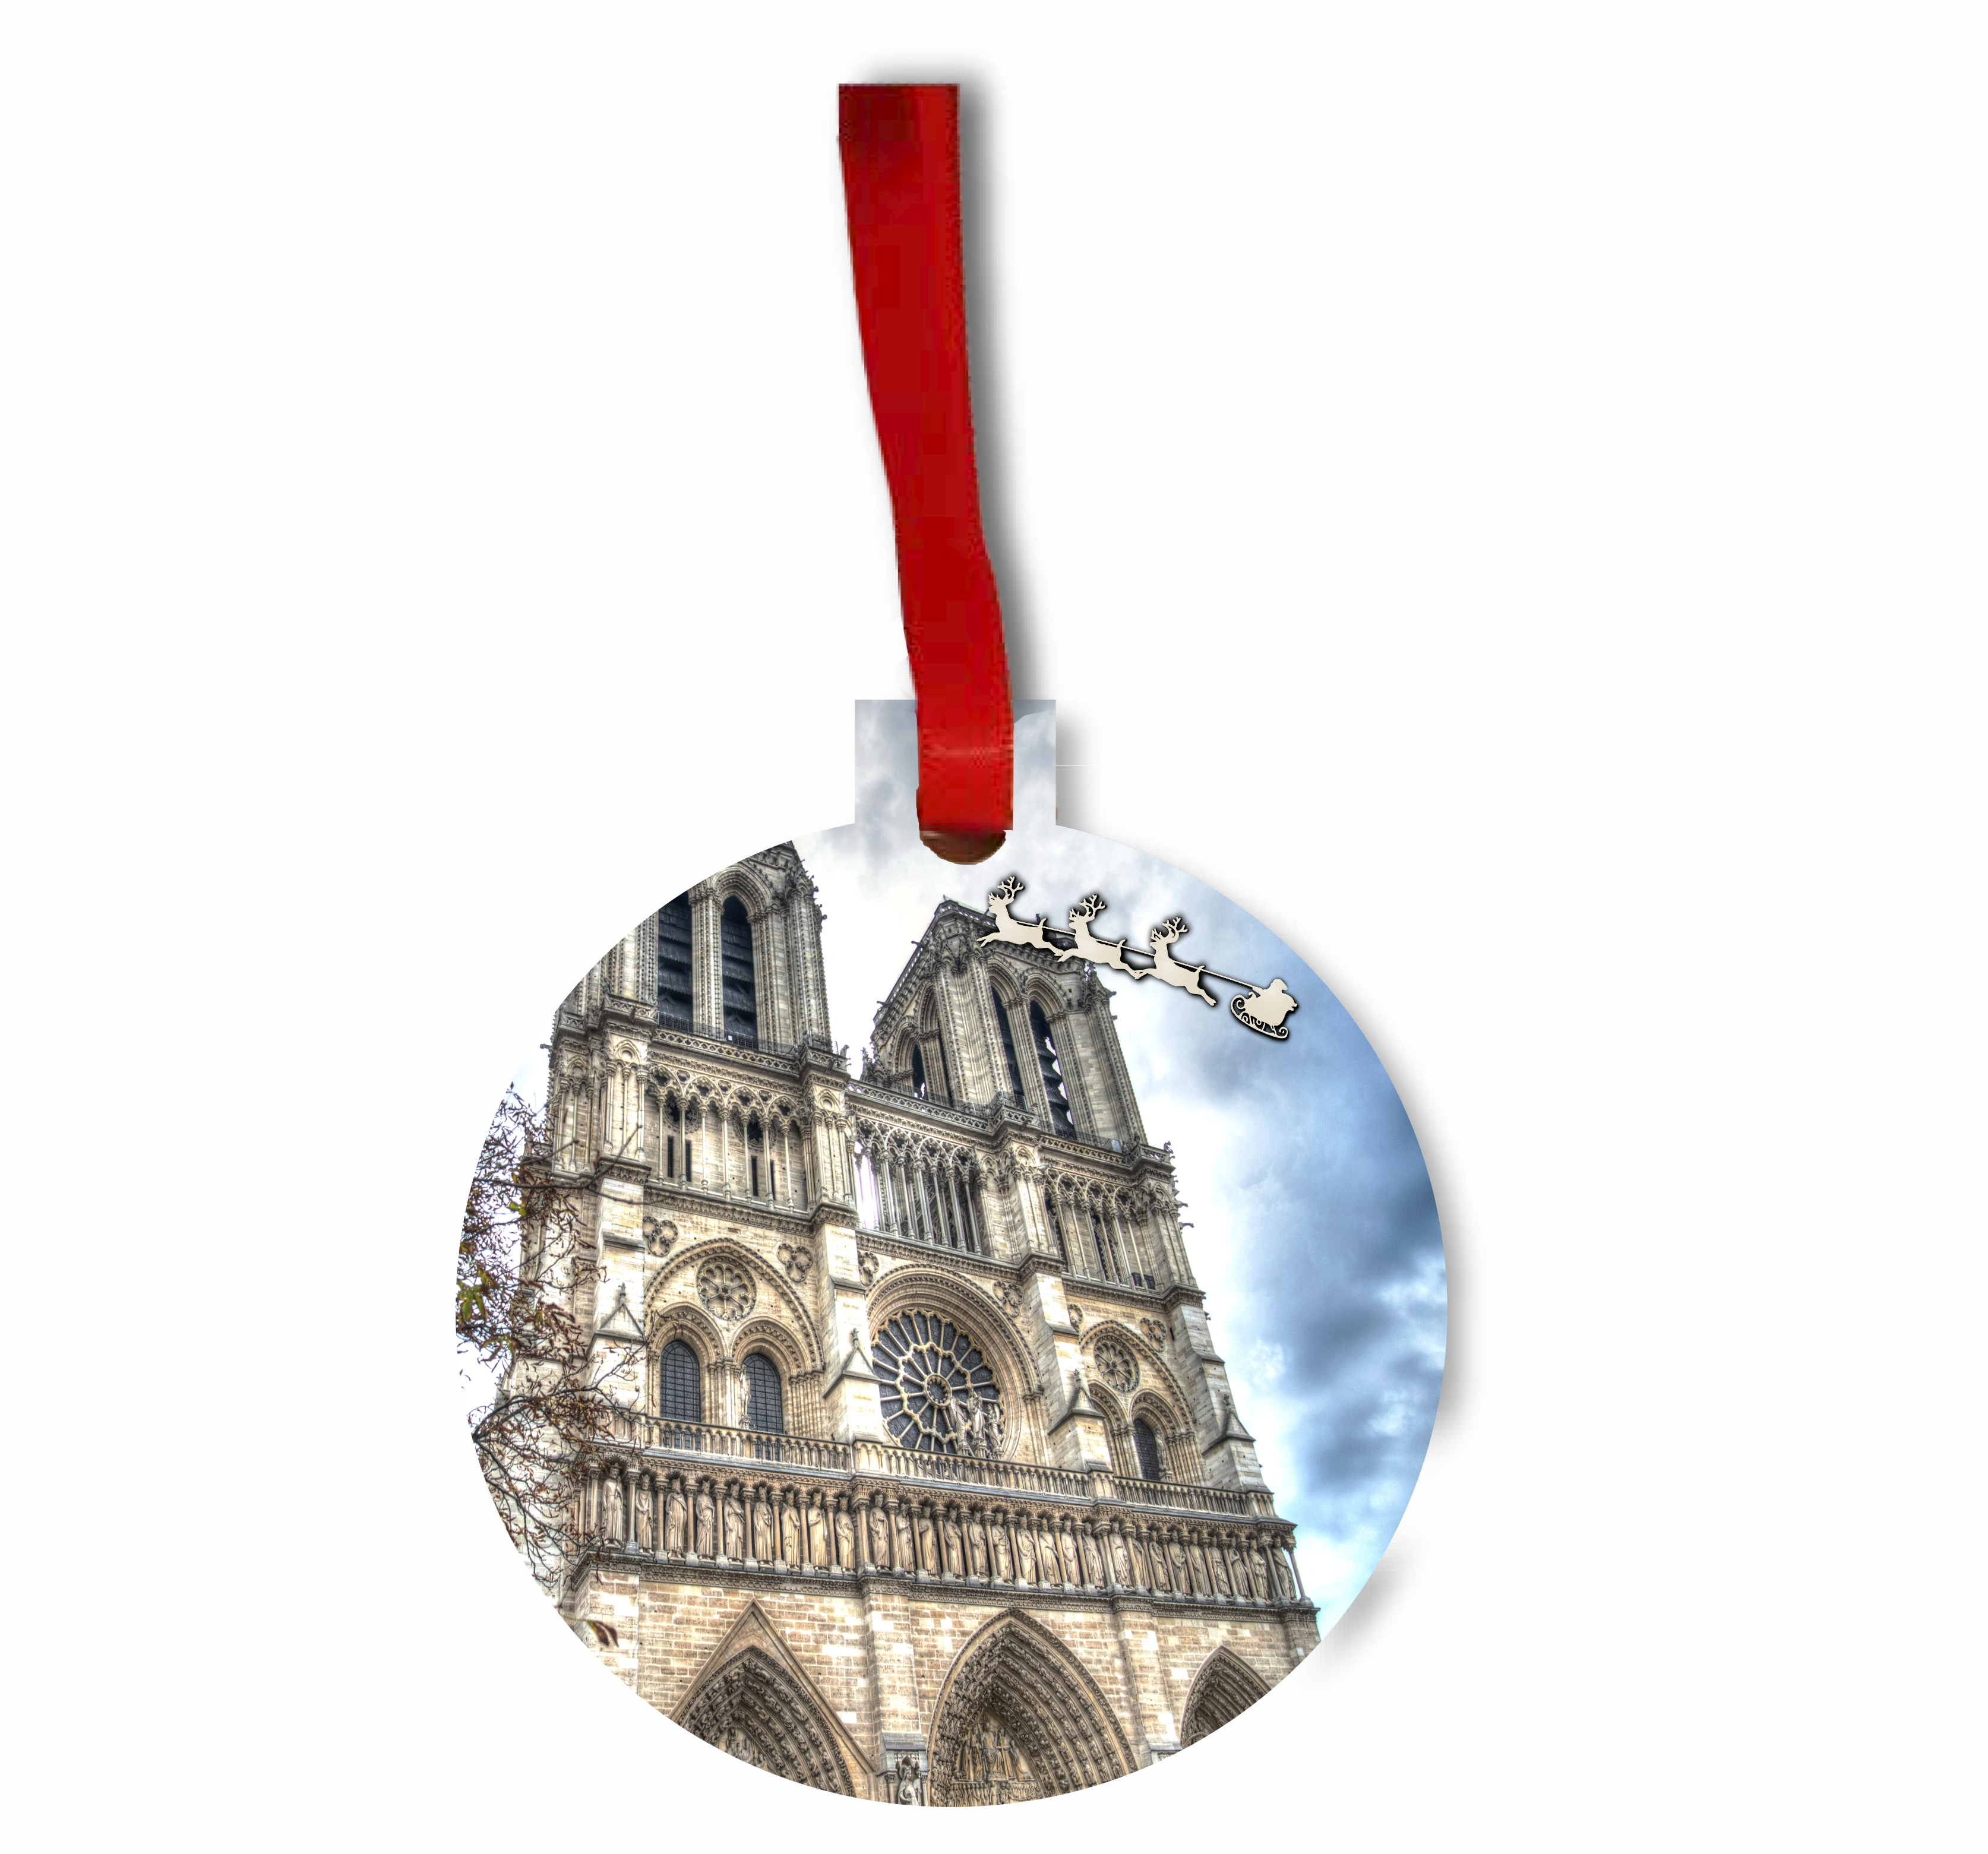 Santa and Sleigh Riding Over The Notre Dame Cathedral TM Flat Round-Shaped Hardboard Holiday Tree Ornament Made in the USA